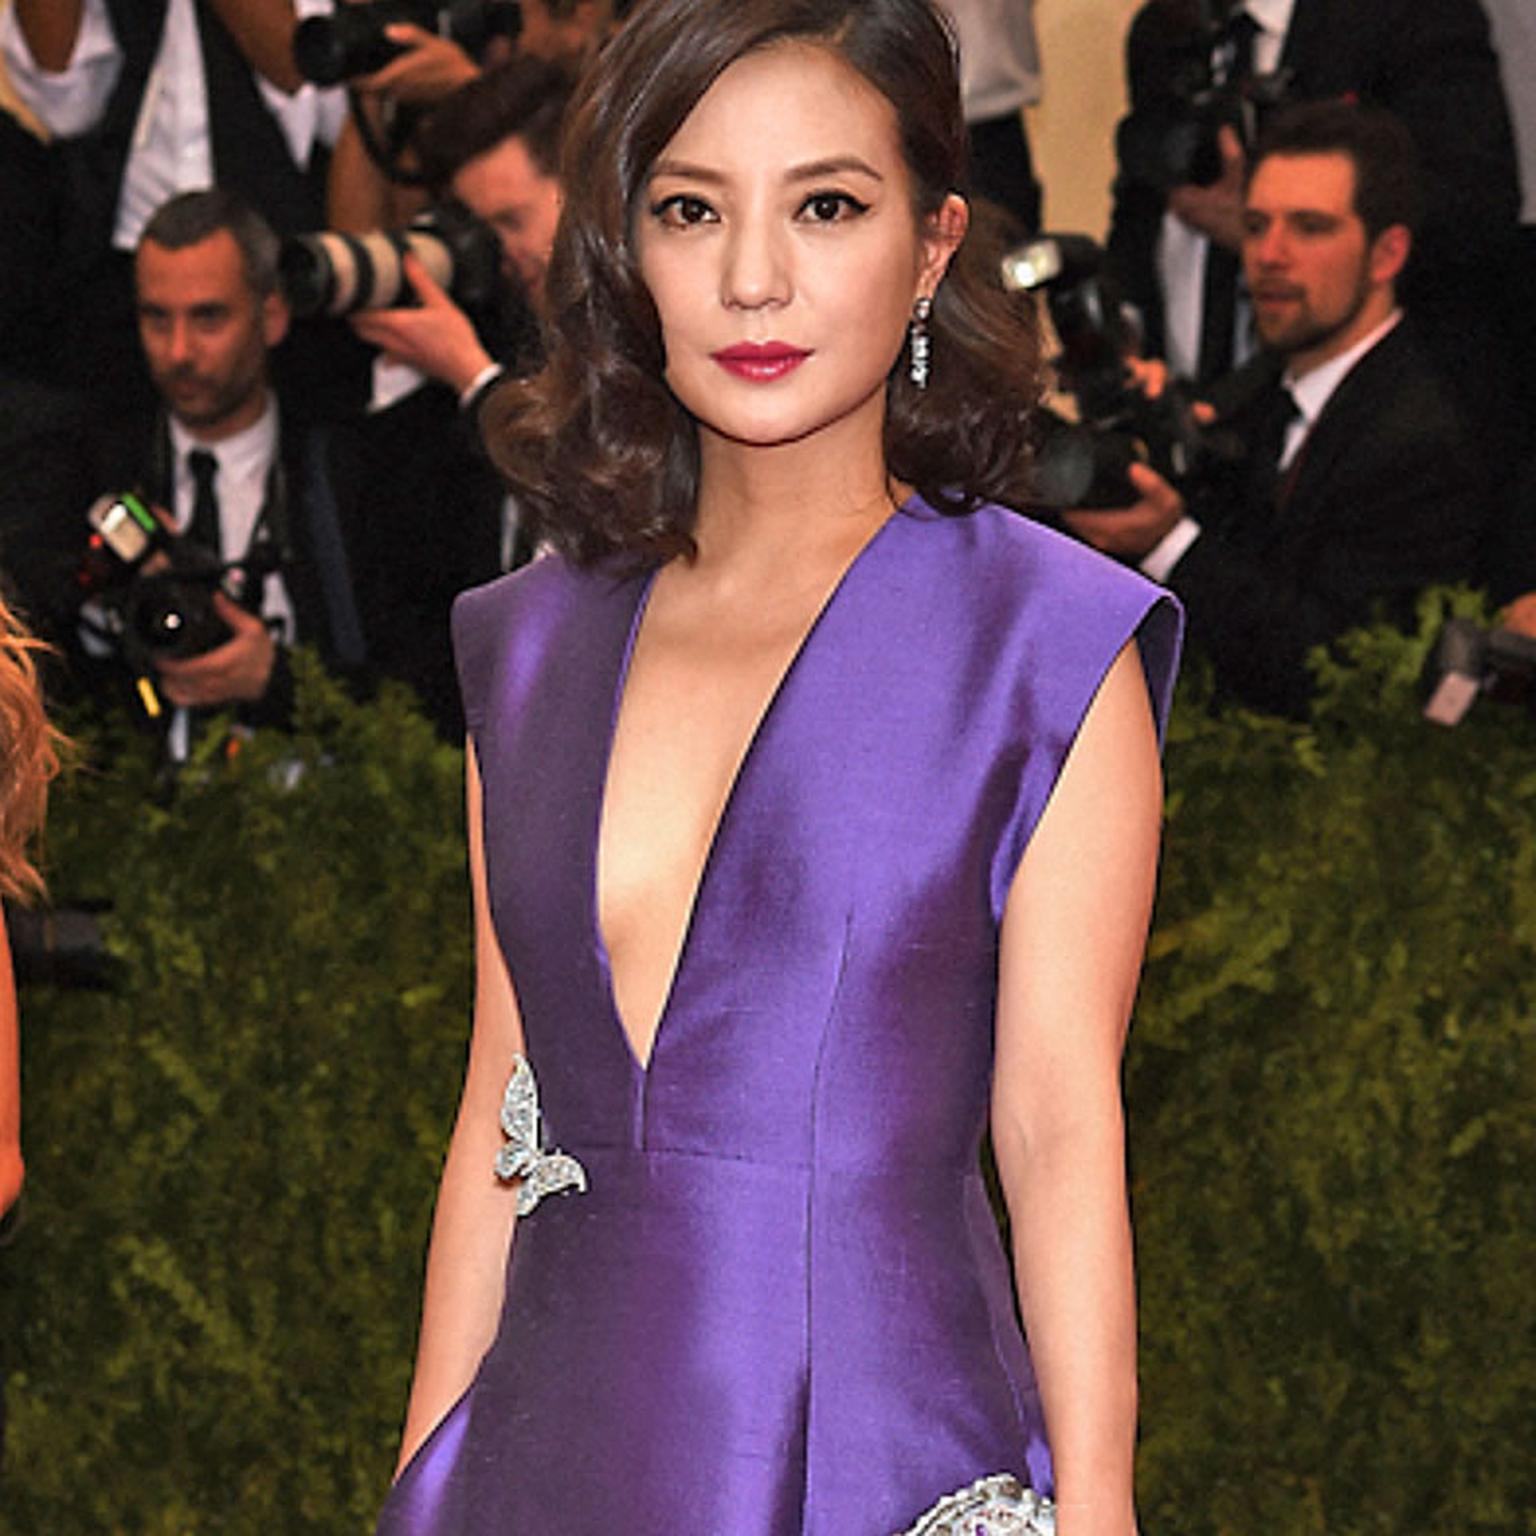 Zhao Wei wearing Tiffany brooch